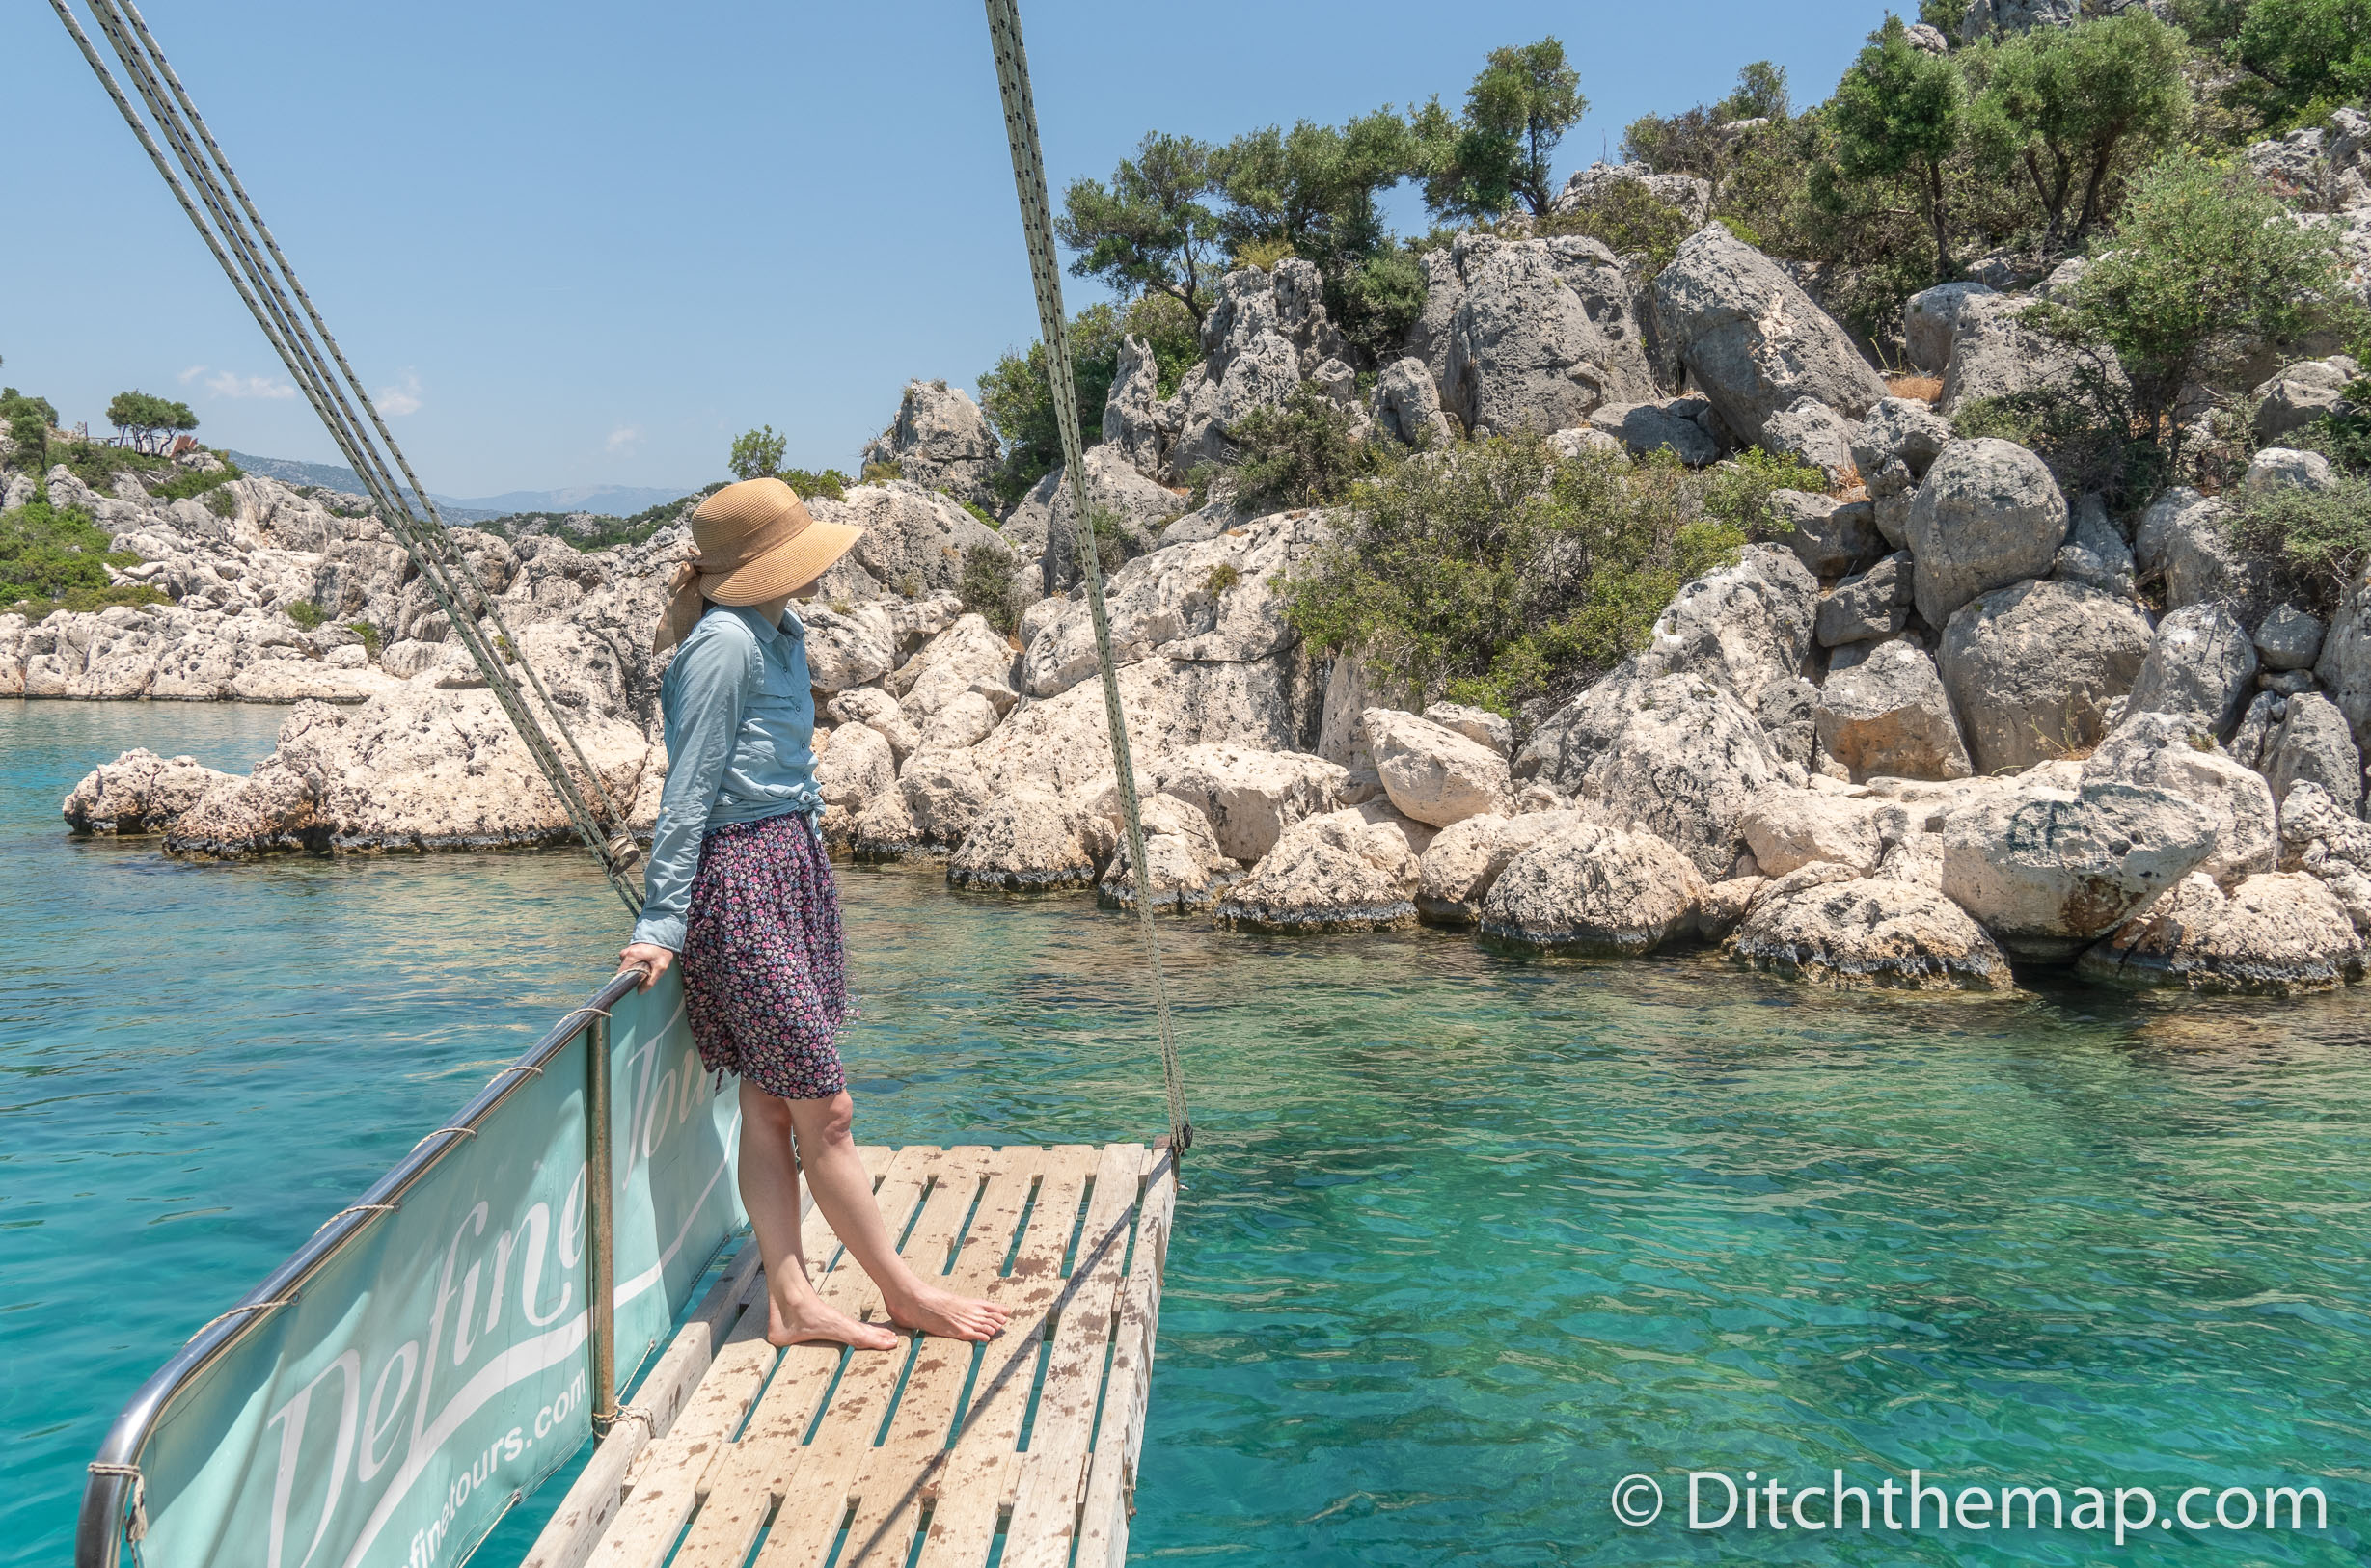 Viewing the Clear Turquoise waters on the Boat Tour